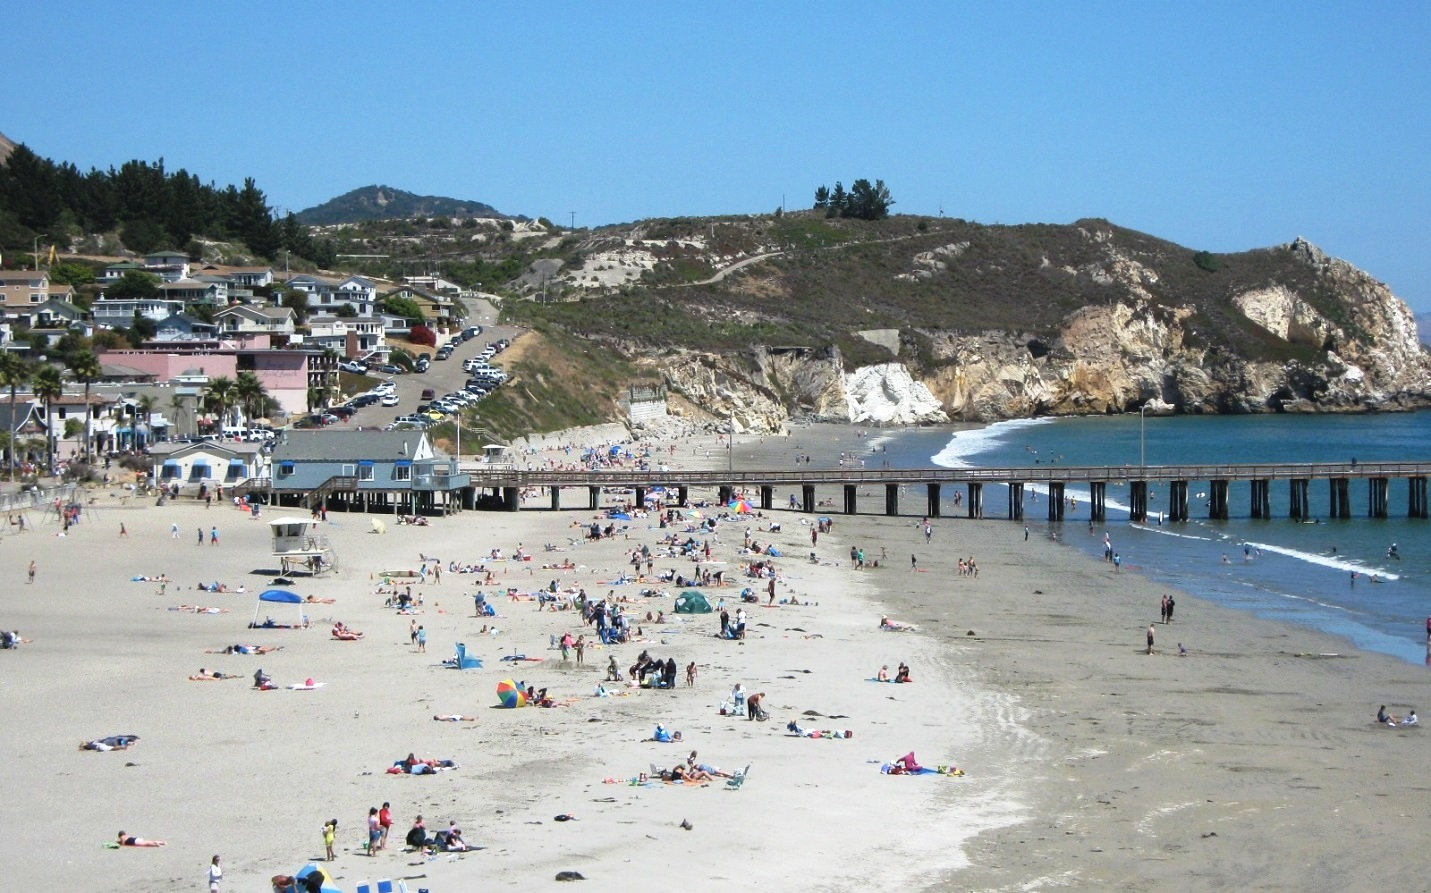 Crowd of people at Avila Beach